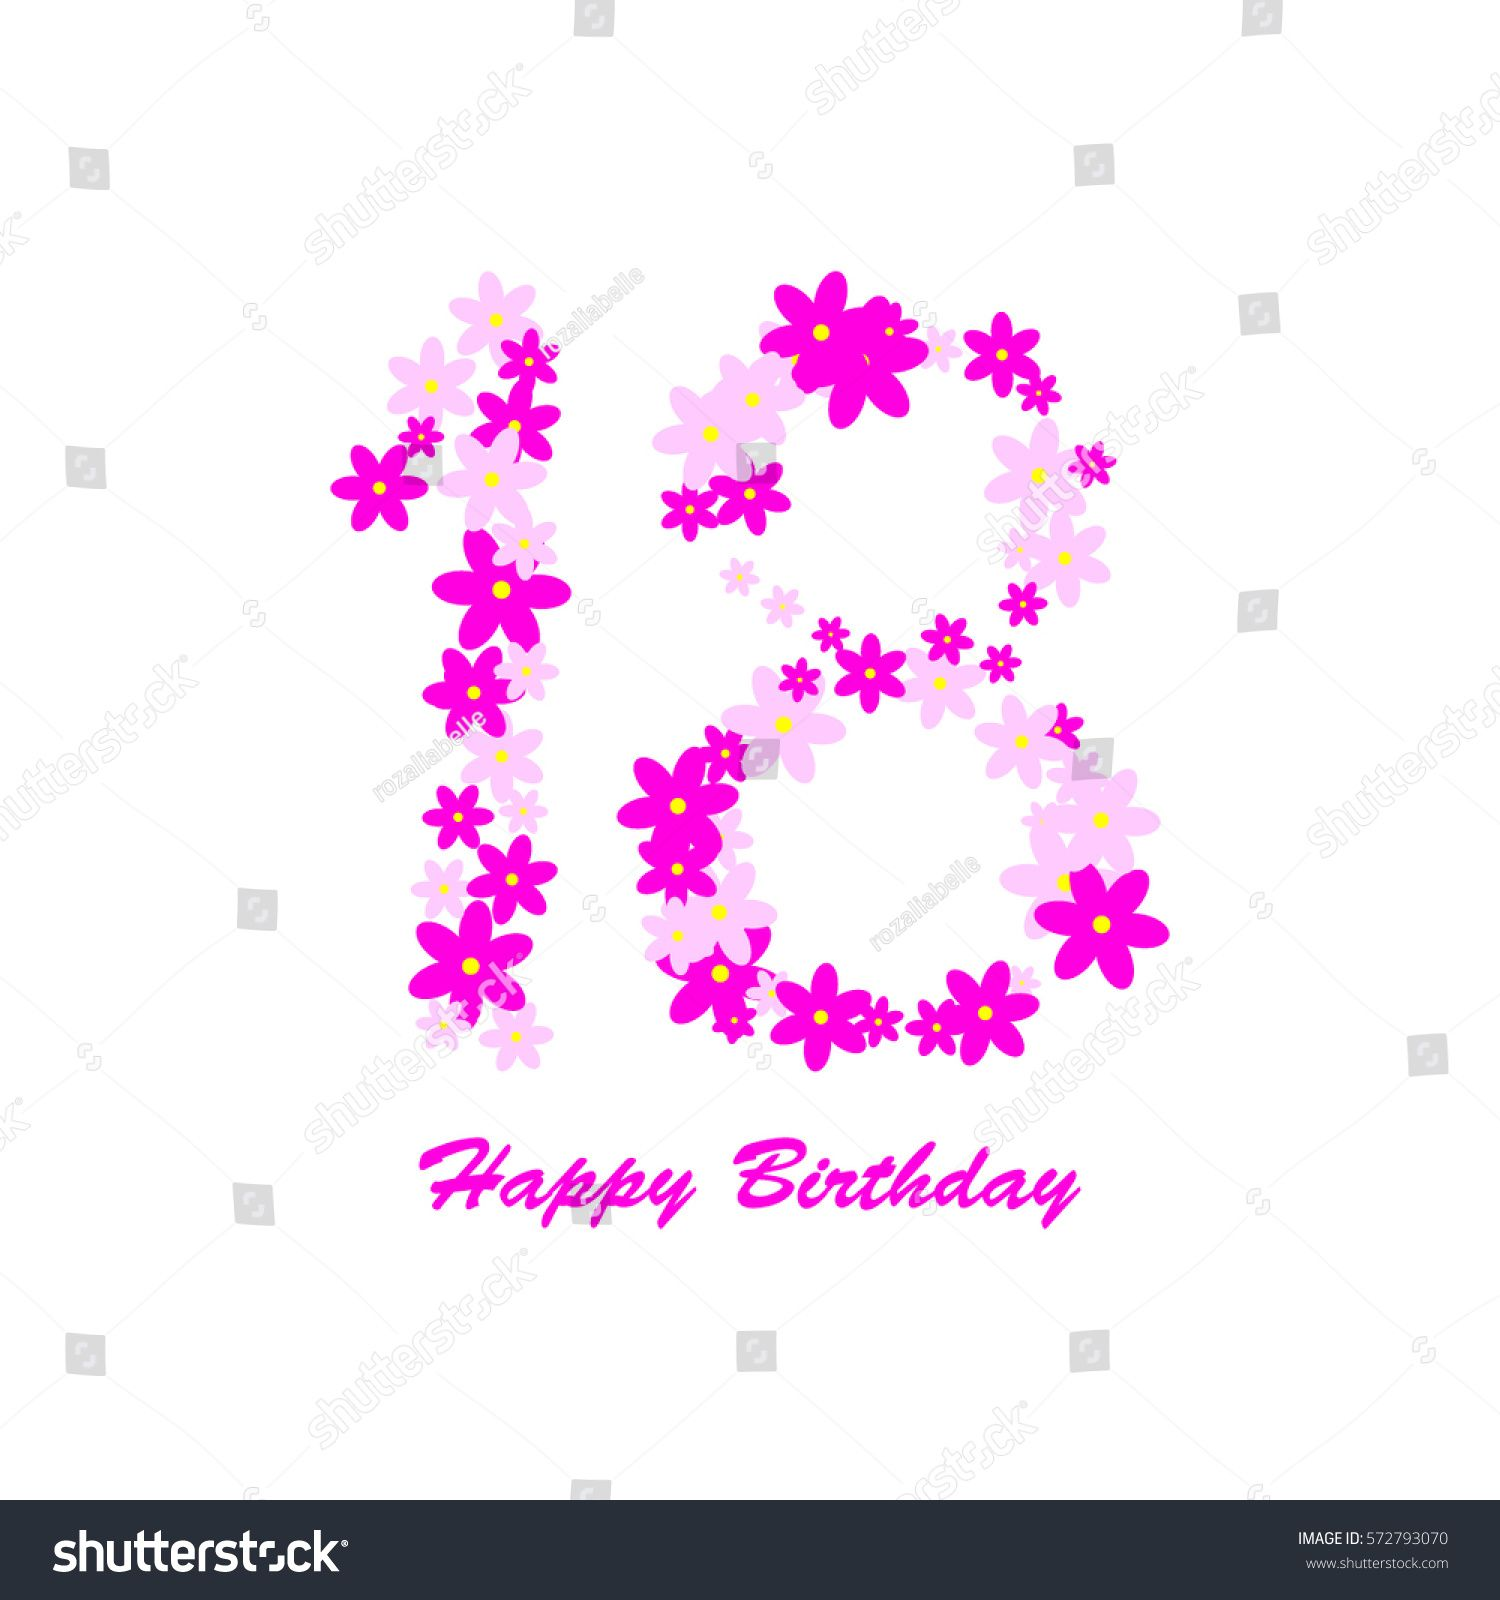 Happy birthday pink and purple flowers on a white background 18 happy birthday pink and purple flowers on a white background 18 years izmirmasajfo